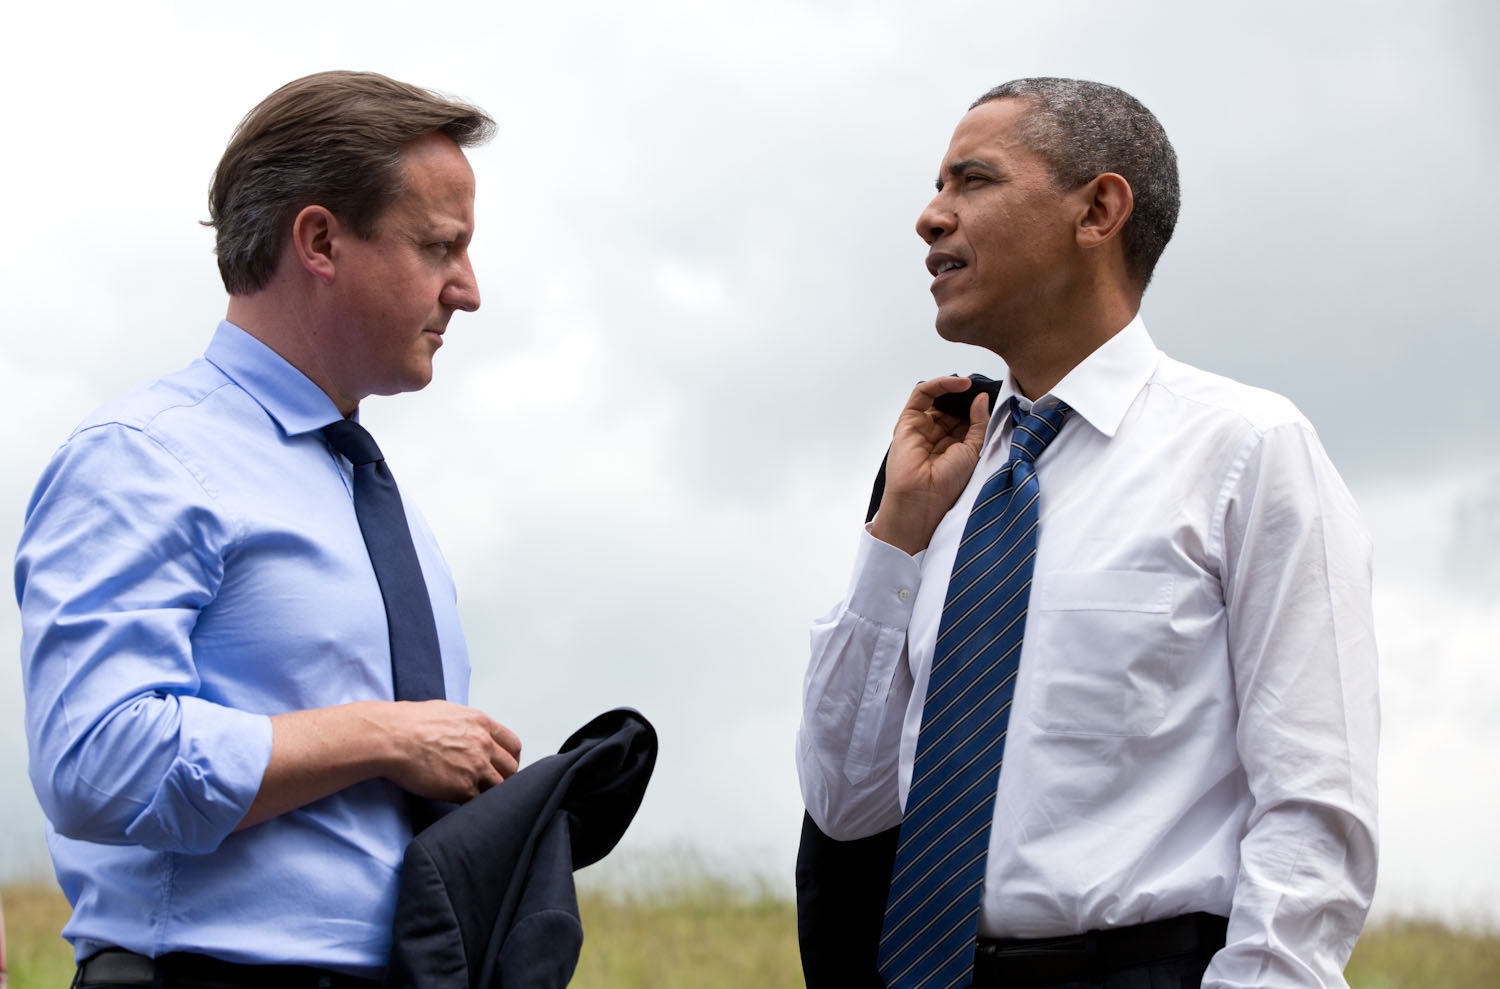 President Barack Obama and British Prime Minister David Cameron talk at the G8 Summit in Lough Erne